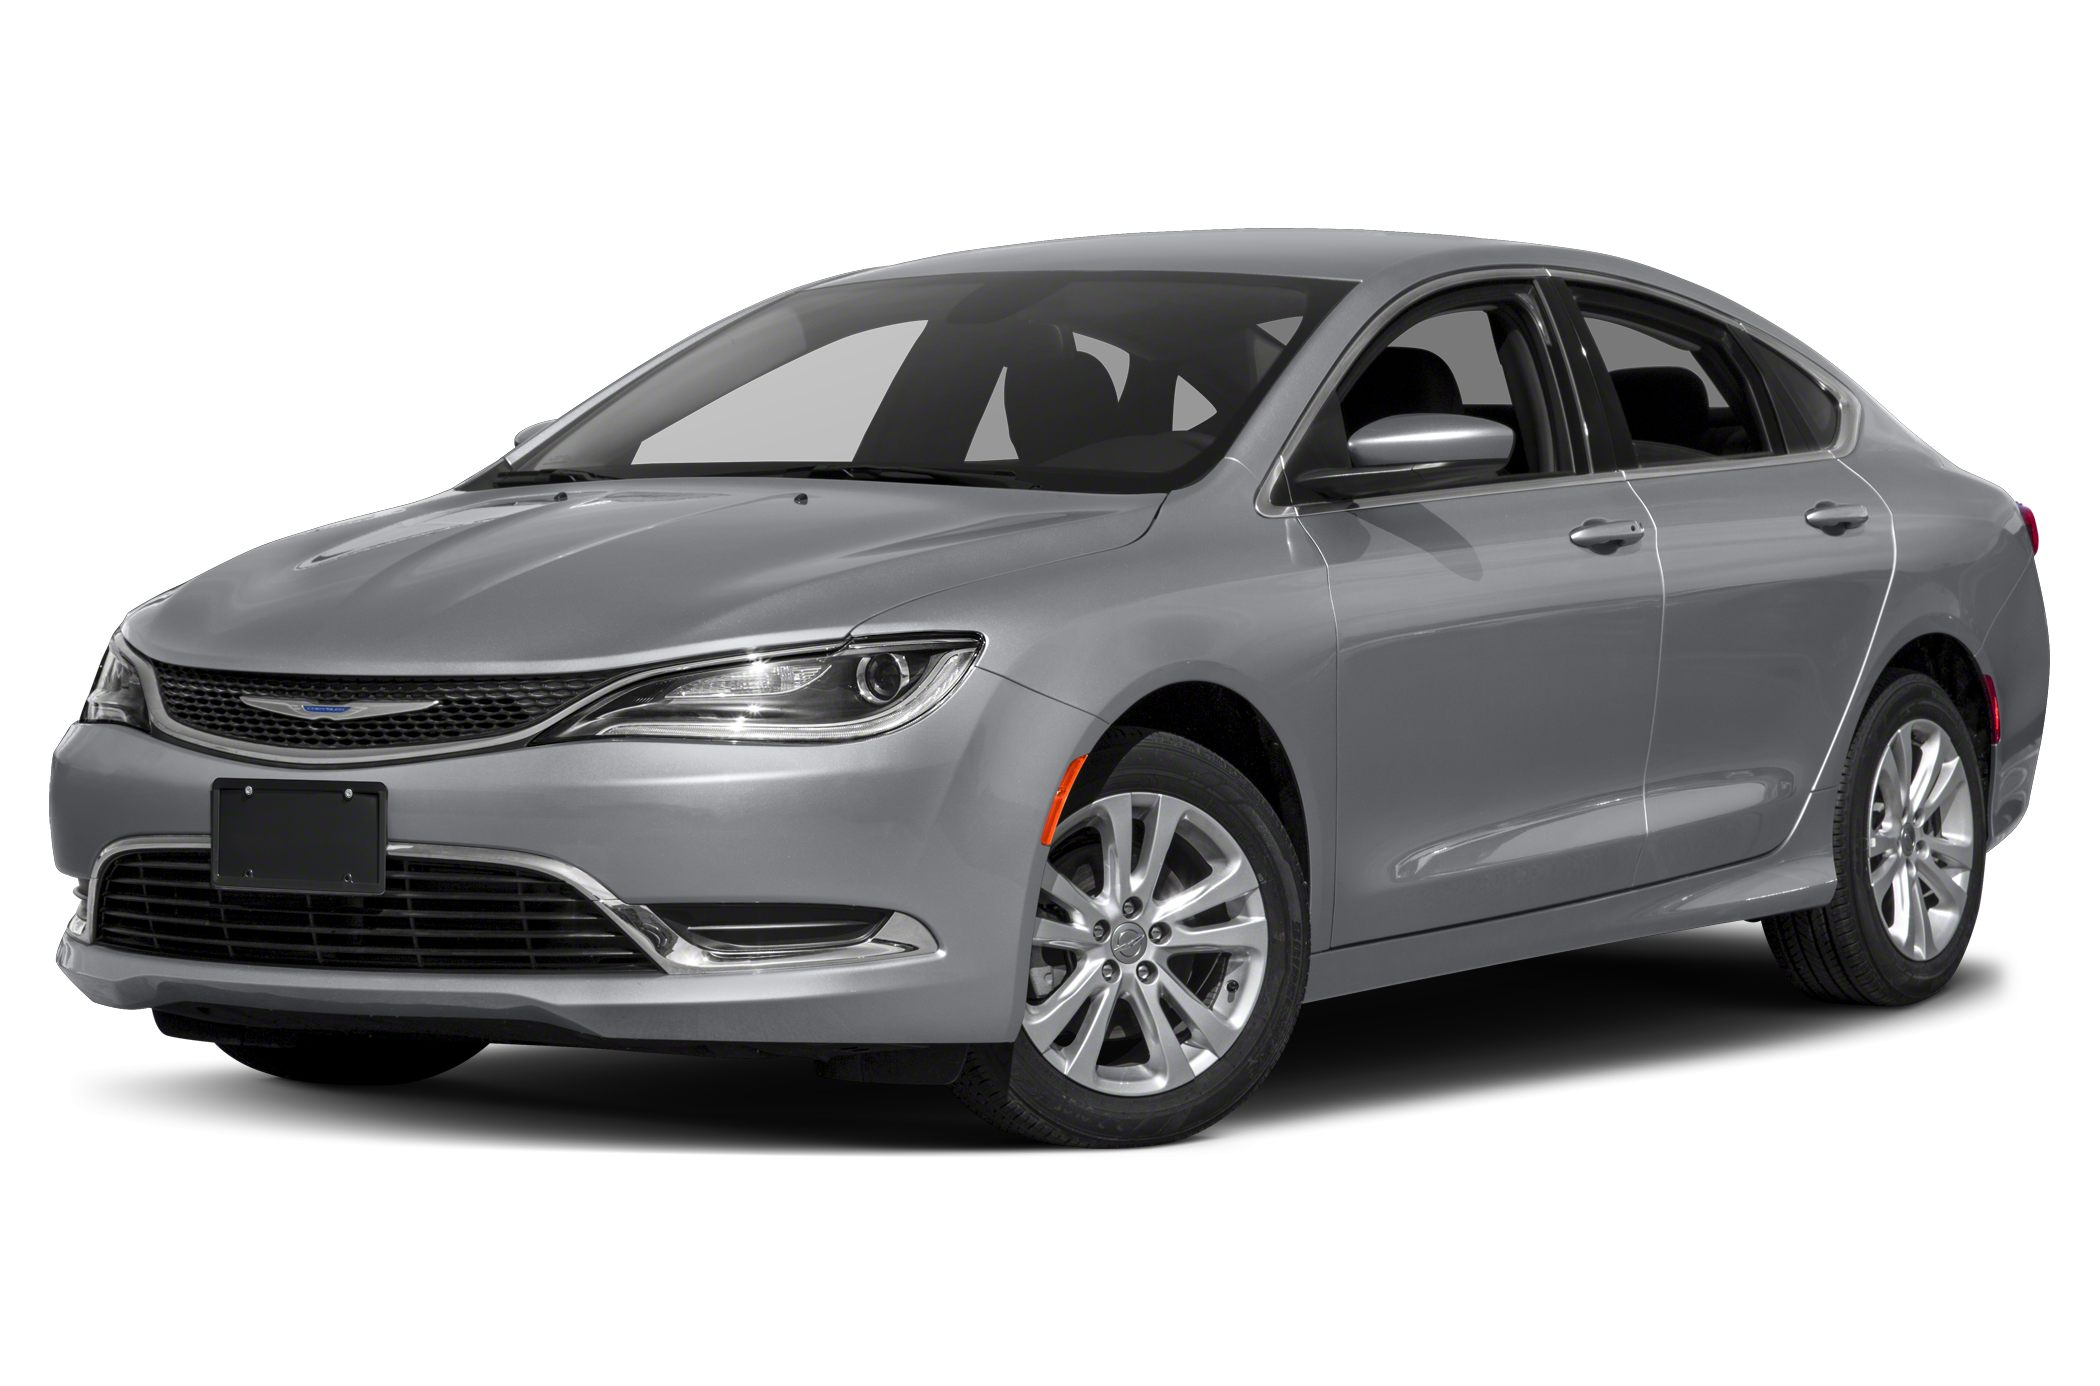 2015 Chrysler 200 Limited What an outstanding deal Wow What a sweetheart There is no better tim